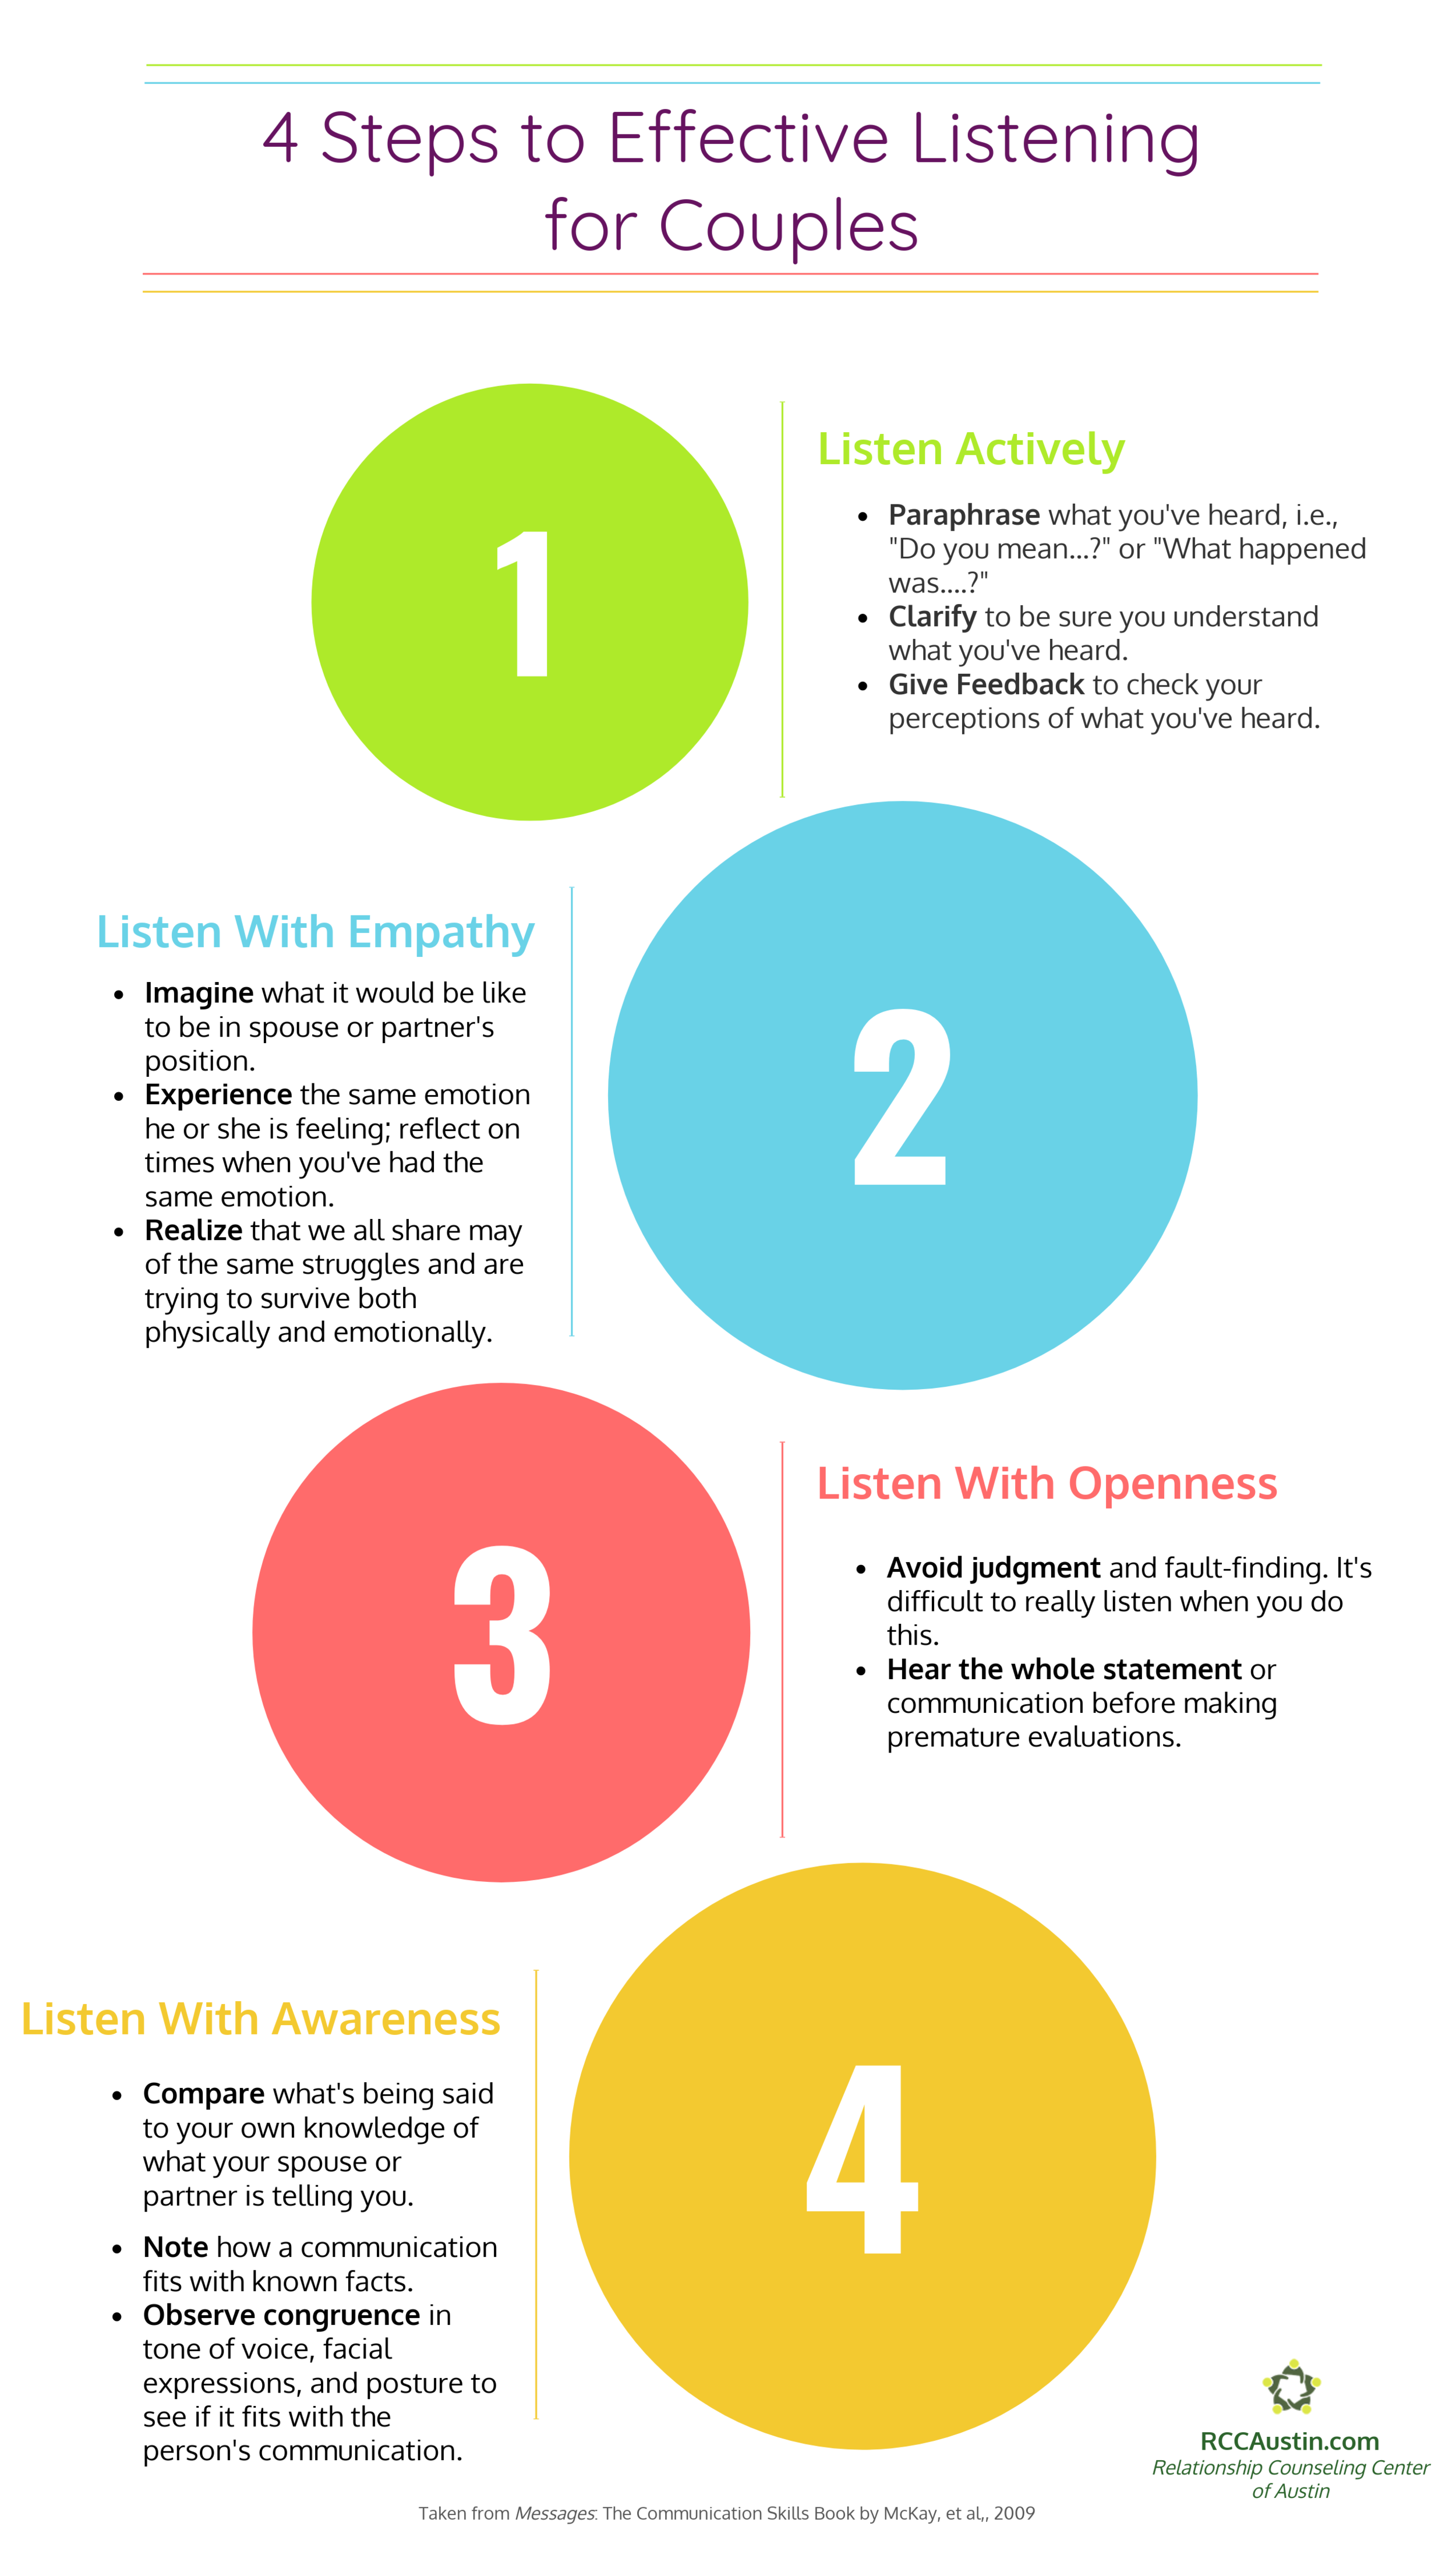 4 Steps to Effective Listening for Couples_April 20 2018.png